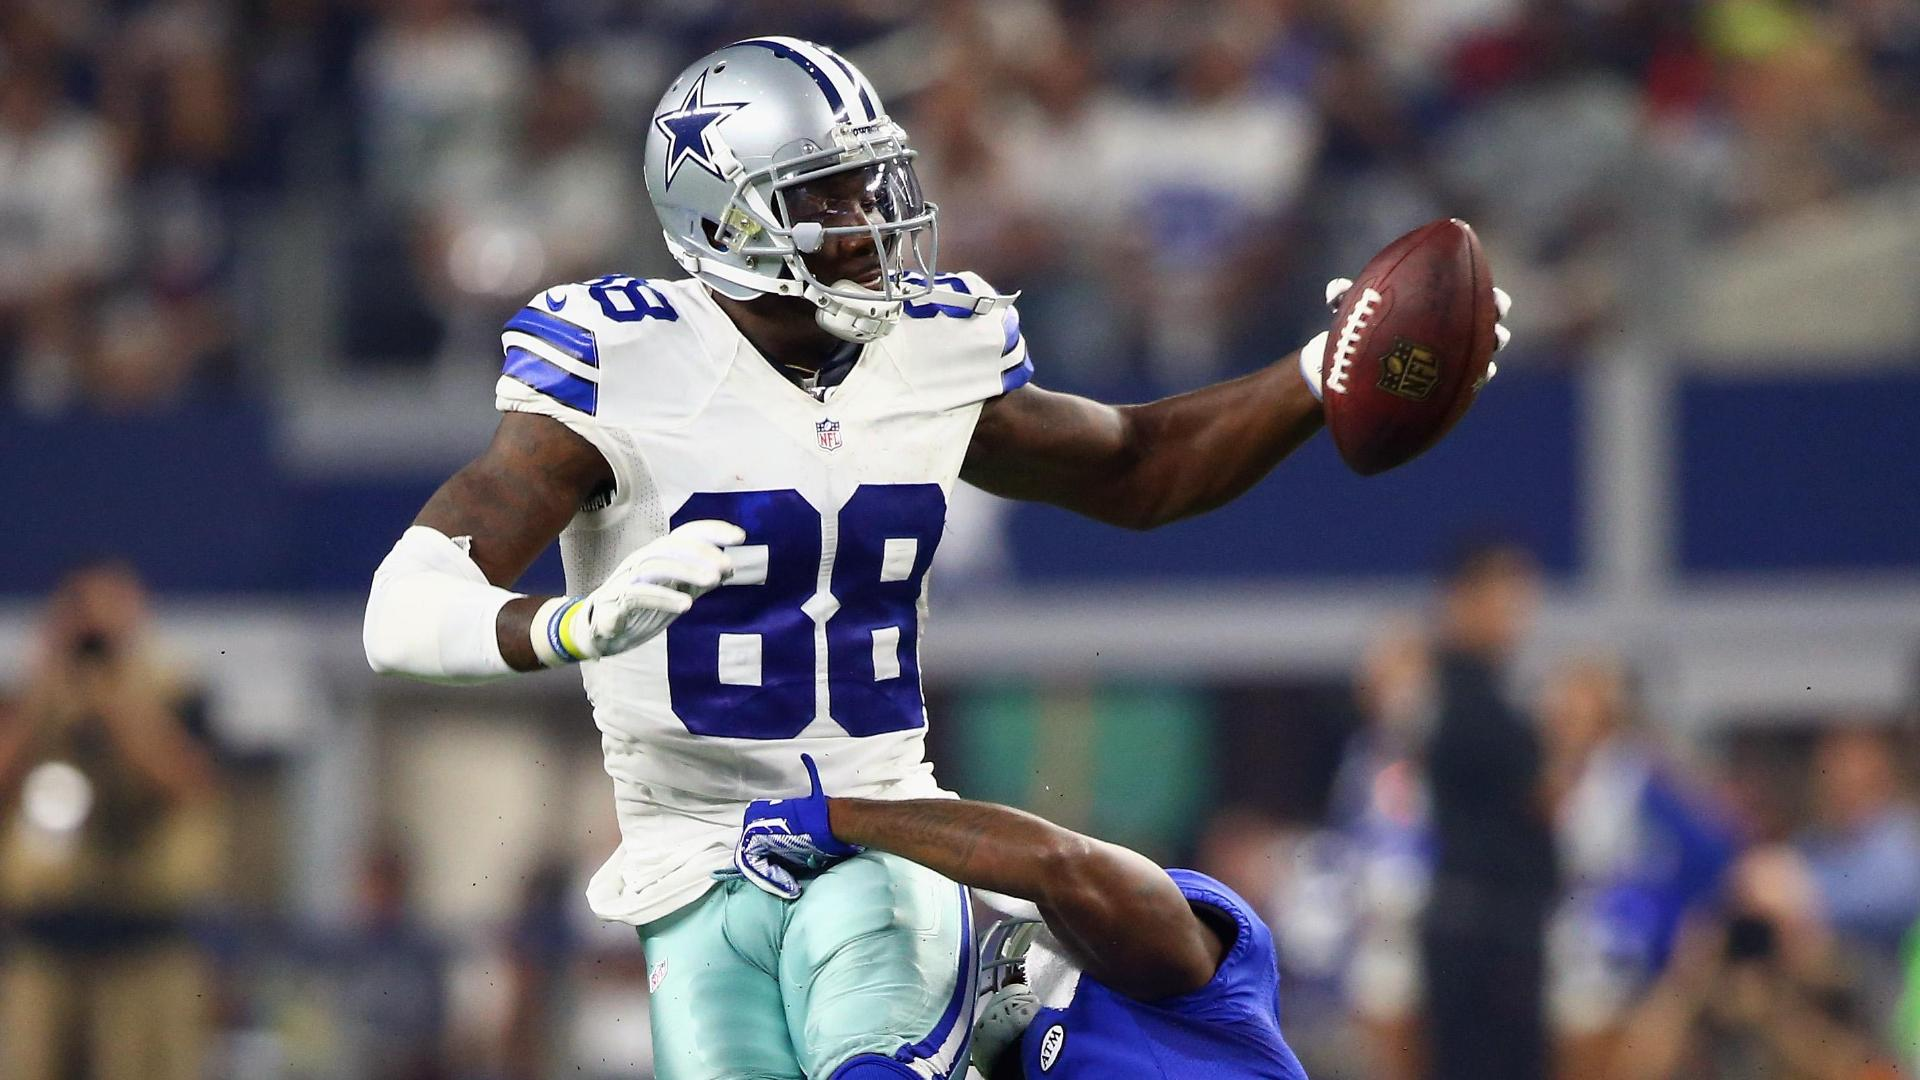 Without Dez, Witten and Beasley will step up